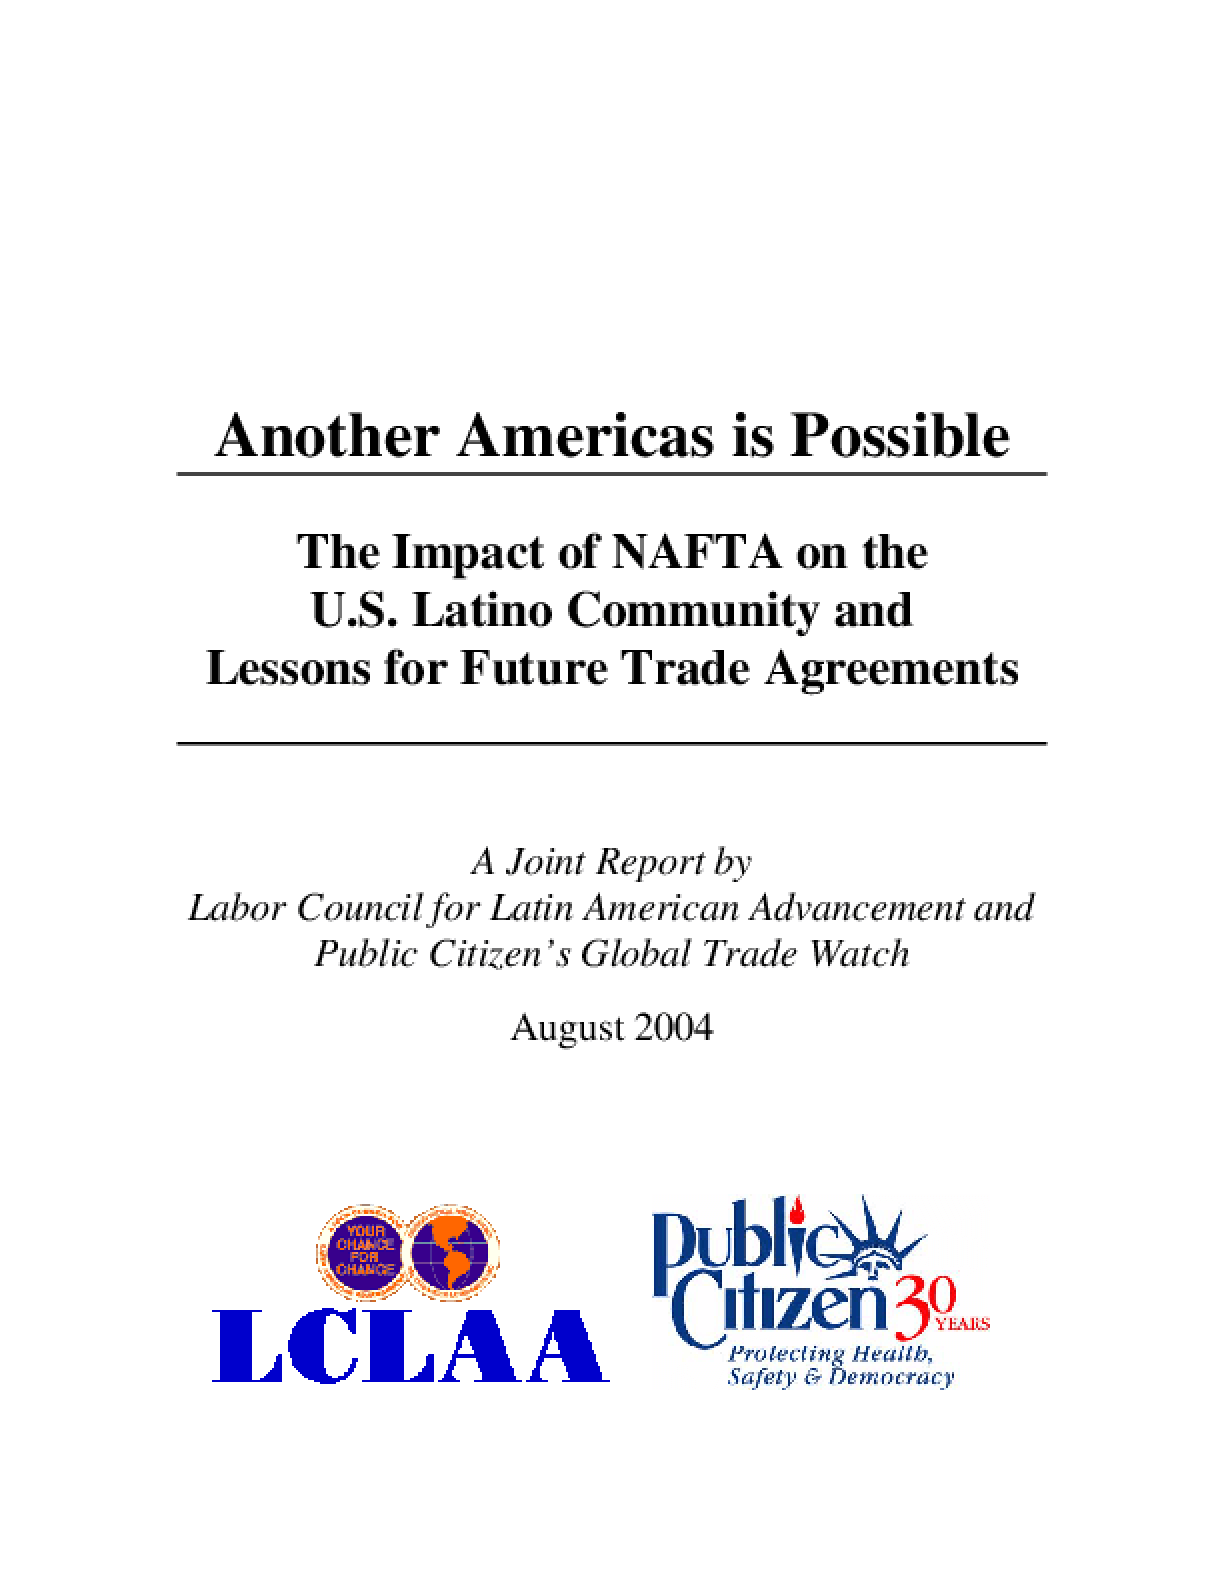 Another America is Possible: The Impact of NAFTA on the U.S. Latino Community and Lessons for Future Trade Agreements